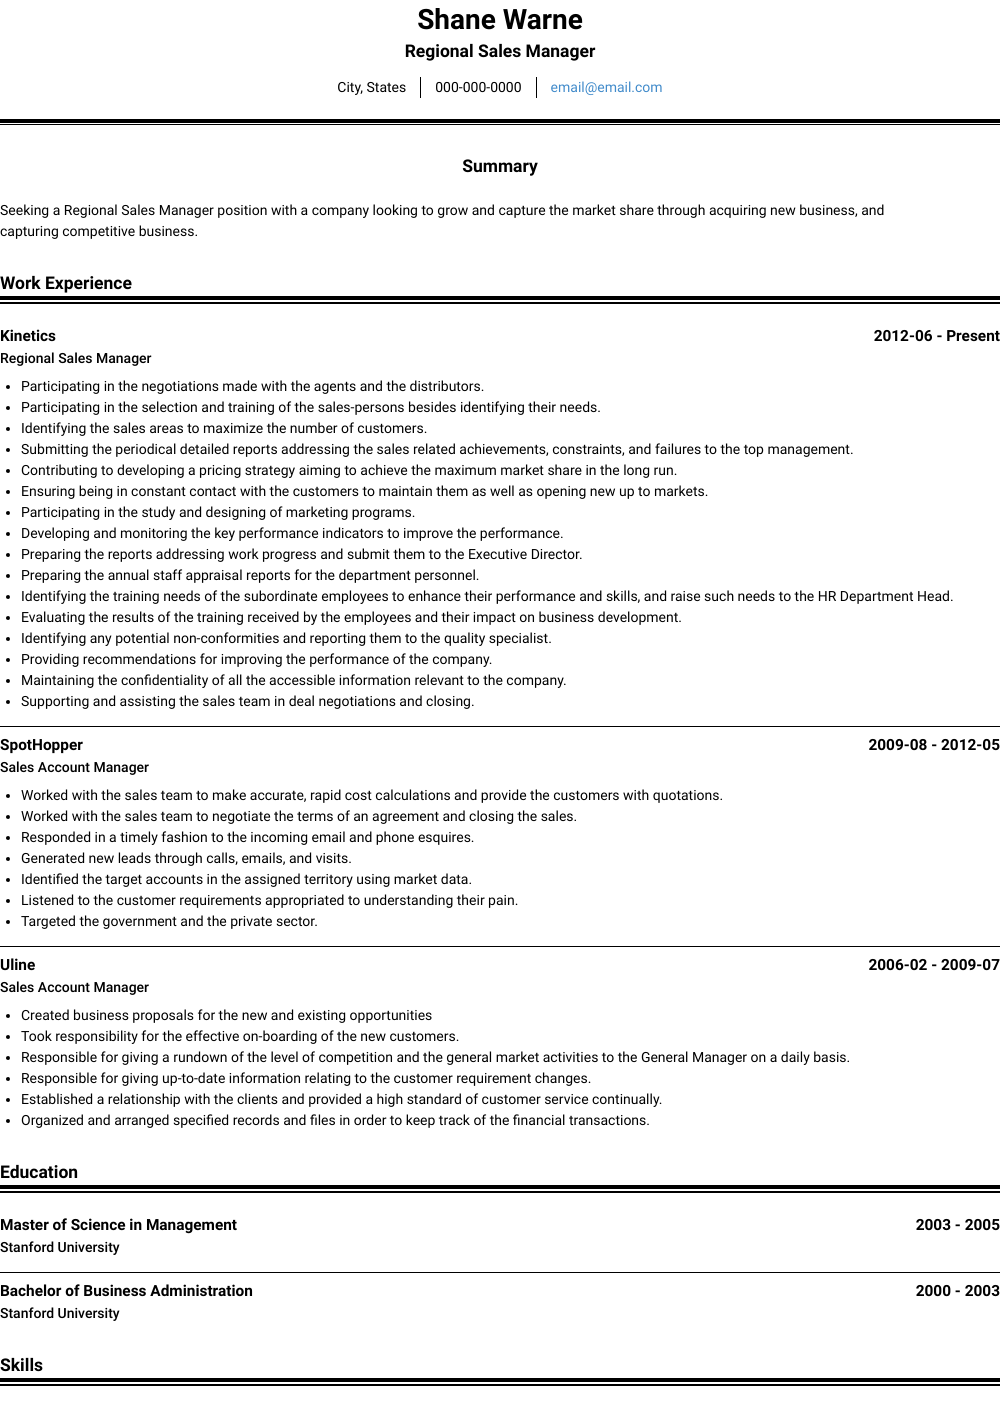 Area Sales Manager - Resume Samples & Templates | VisualCV